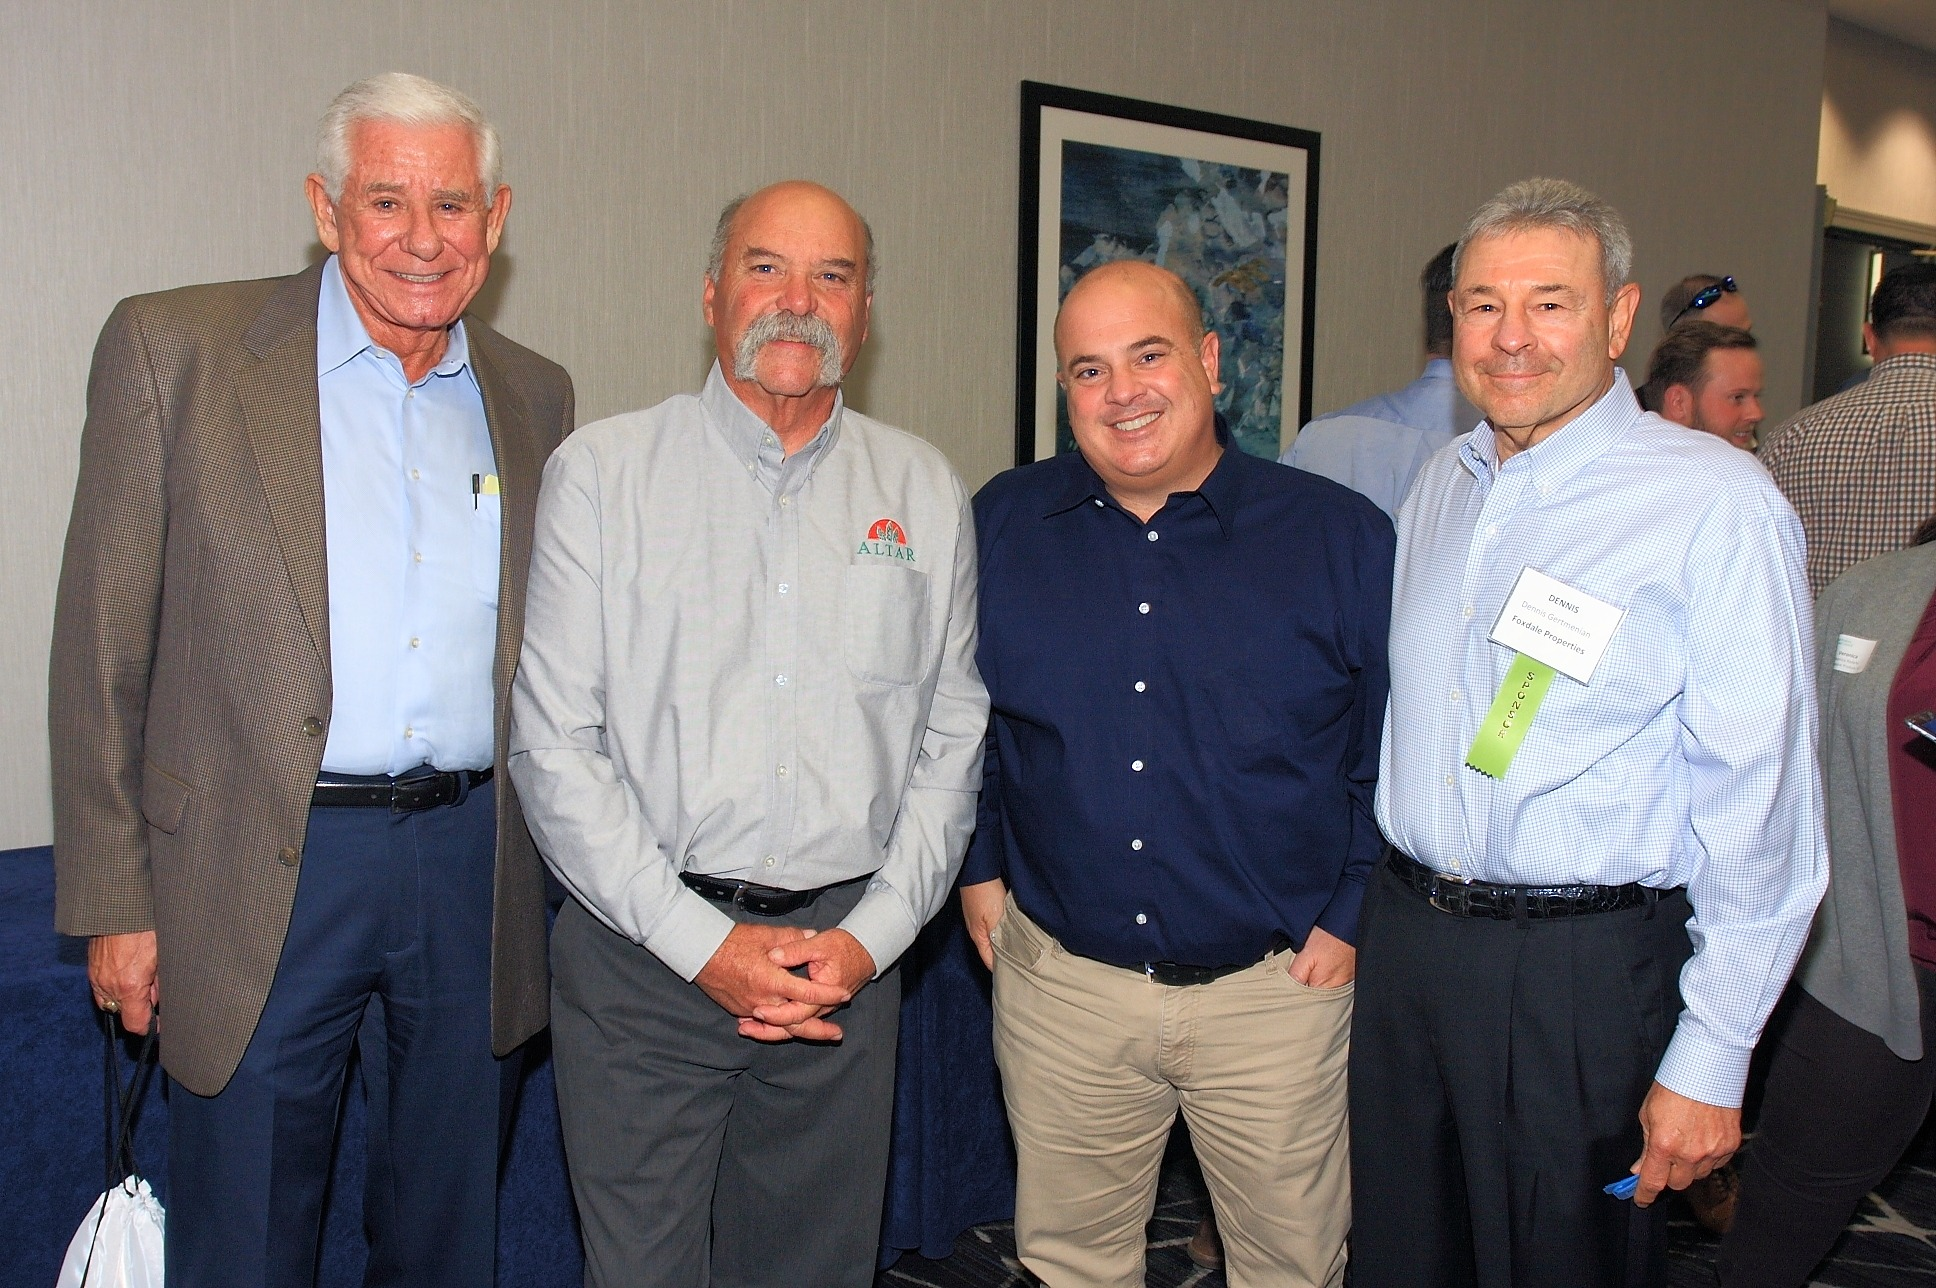 Dick Spezzano of Spezzano Consulting Service, Dino Iacovino of Altar Produce, LLC.; Dominic DeFranco of Progressive Produce, LLC; and Dennis Gertmenian of Foxdale Properties.